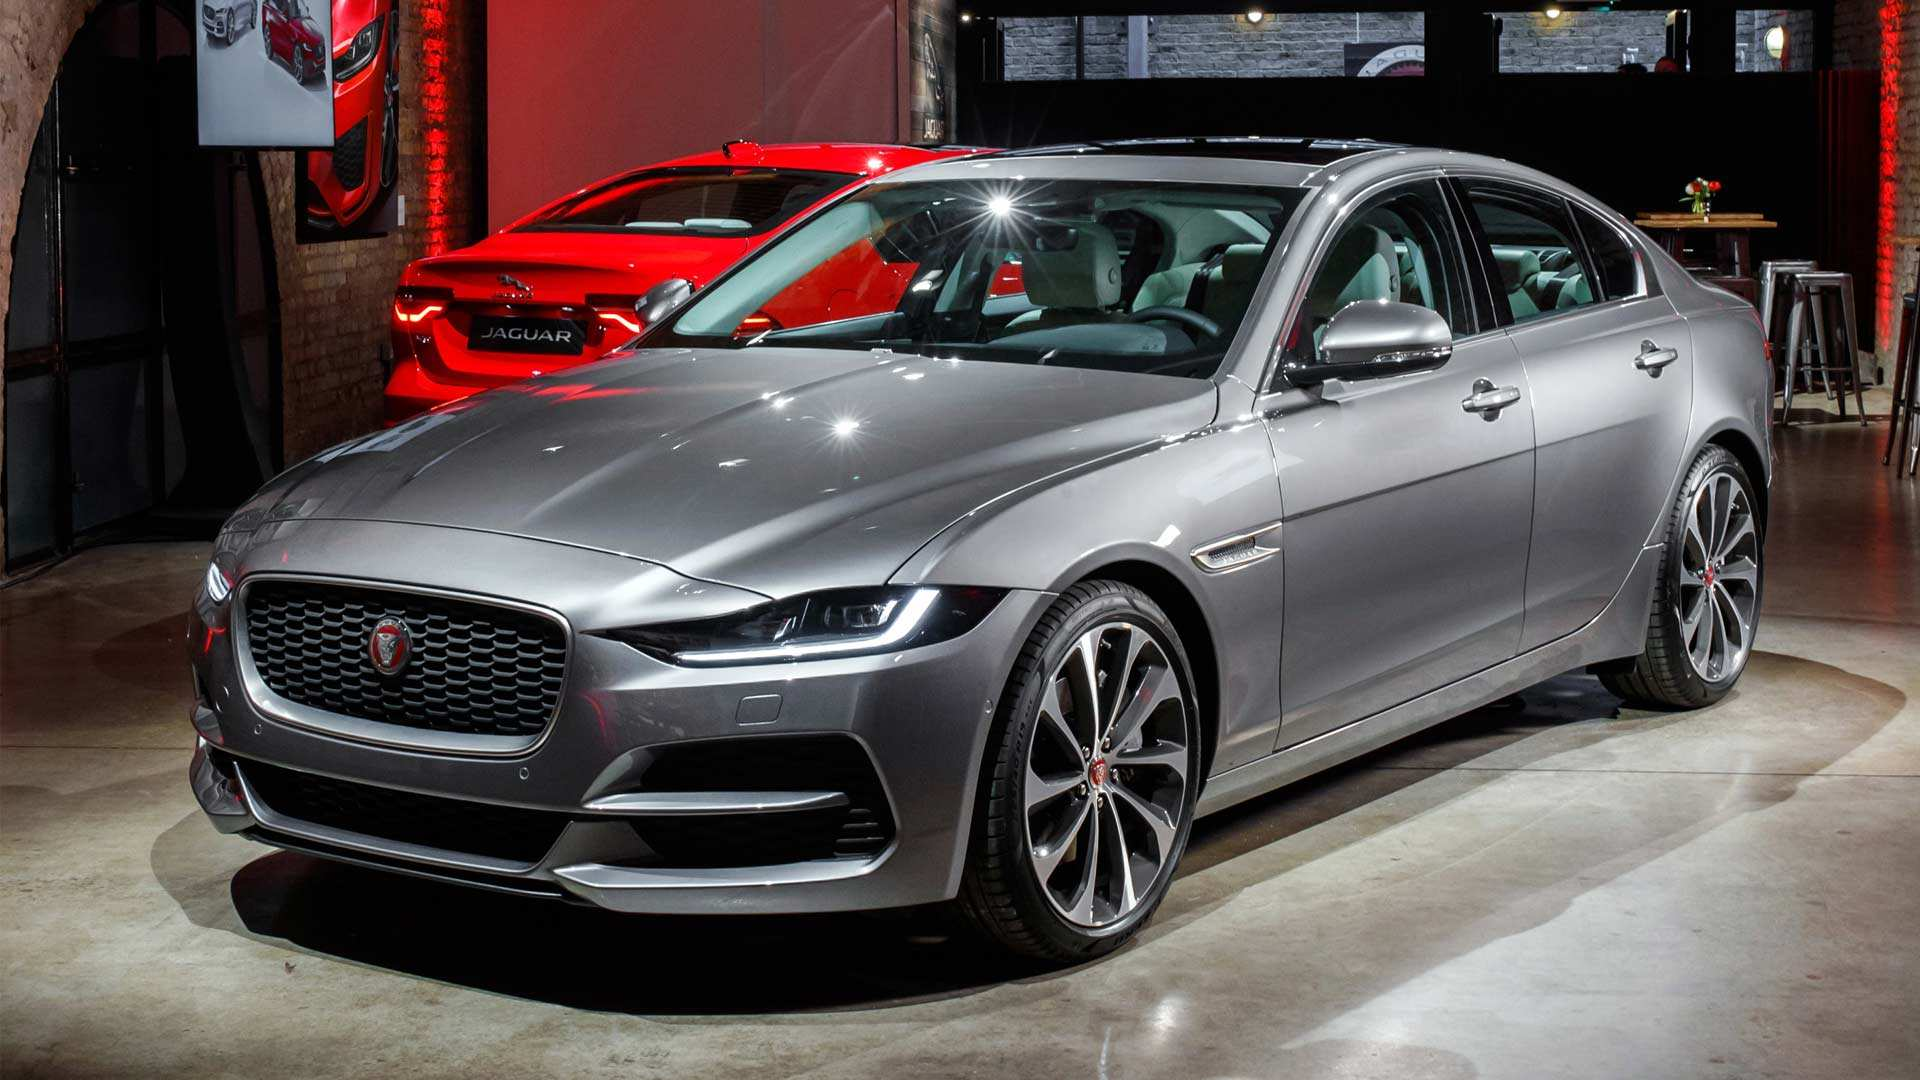 85 The New Jaguar Xe 2020 Interior Release for New Jaguar Xe 2020 Interior